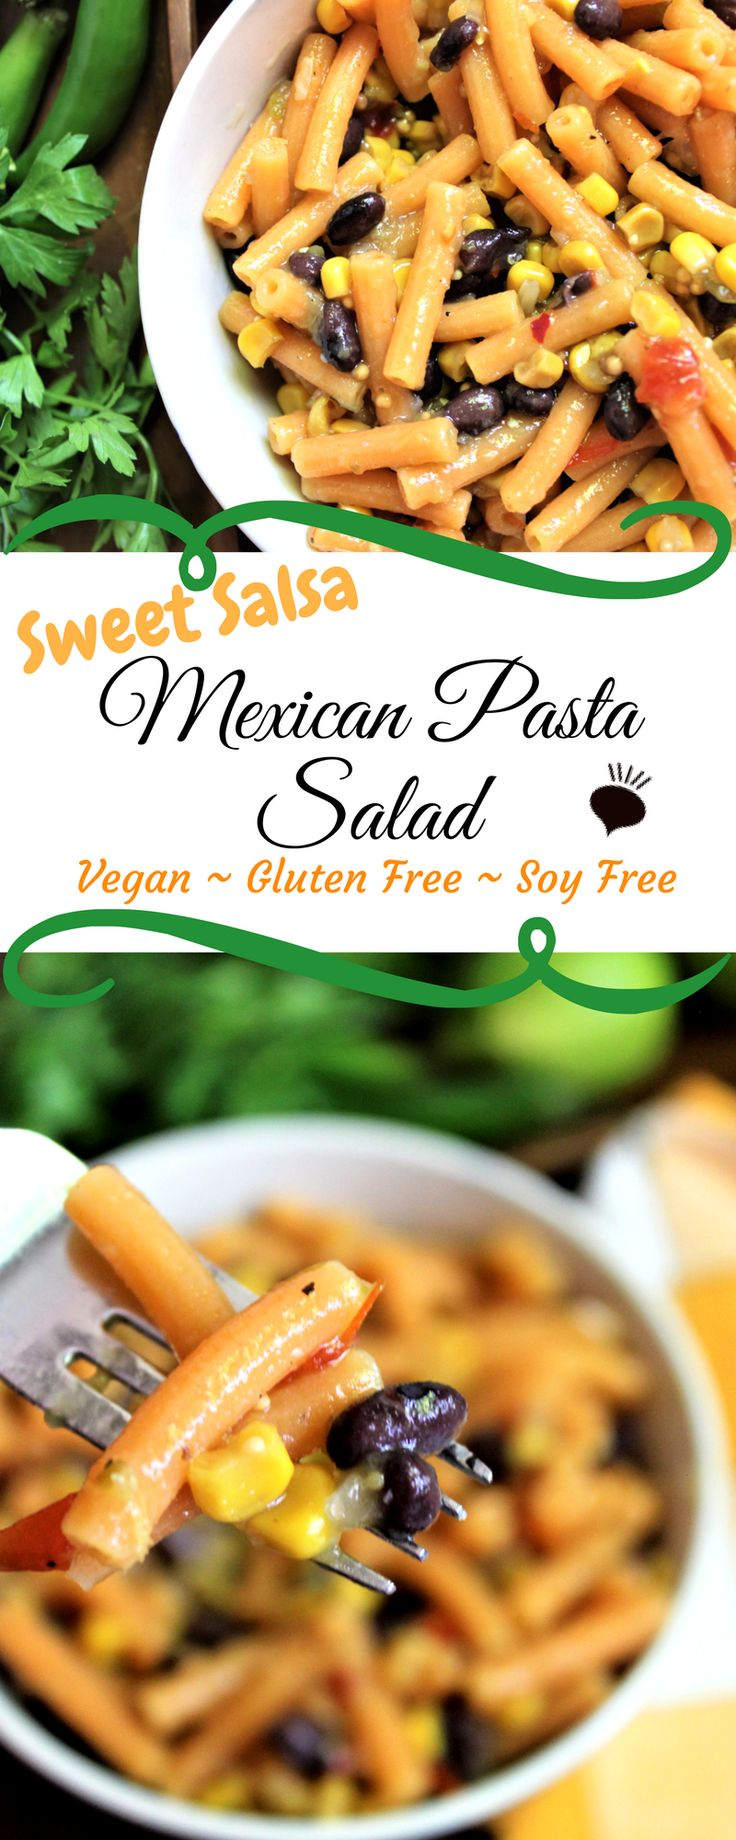 Sweet Mexican Salsa Pasta Salad from using red lentil pasta and salsa from Trader Joes is vegan and gluten free. Sweet with a little spice, this pasta salad is one of my kids' favorites! thehiddenveggies.com